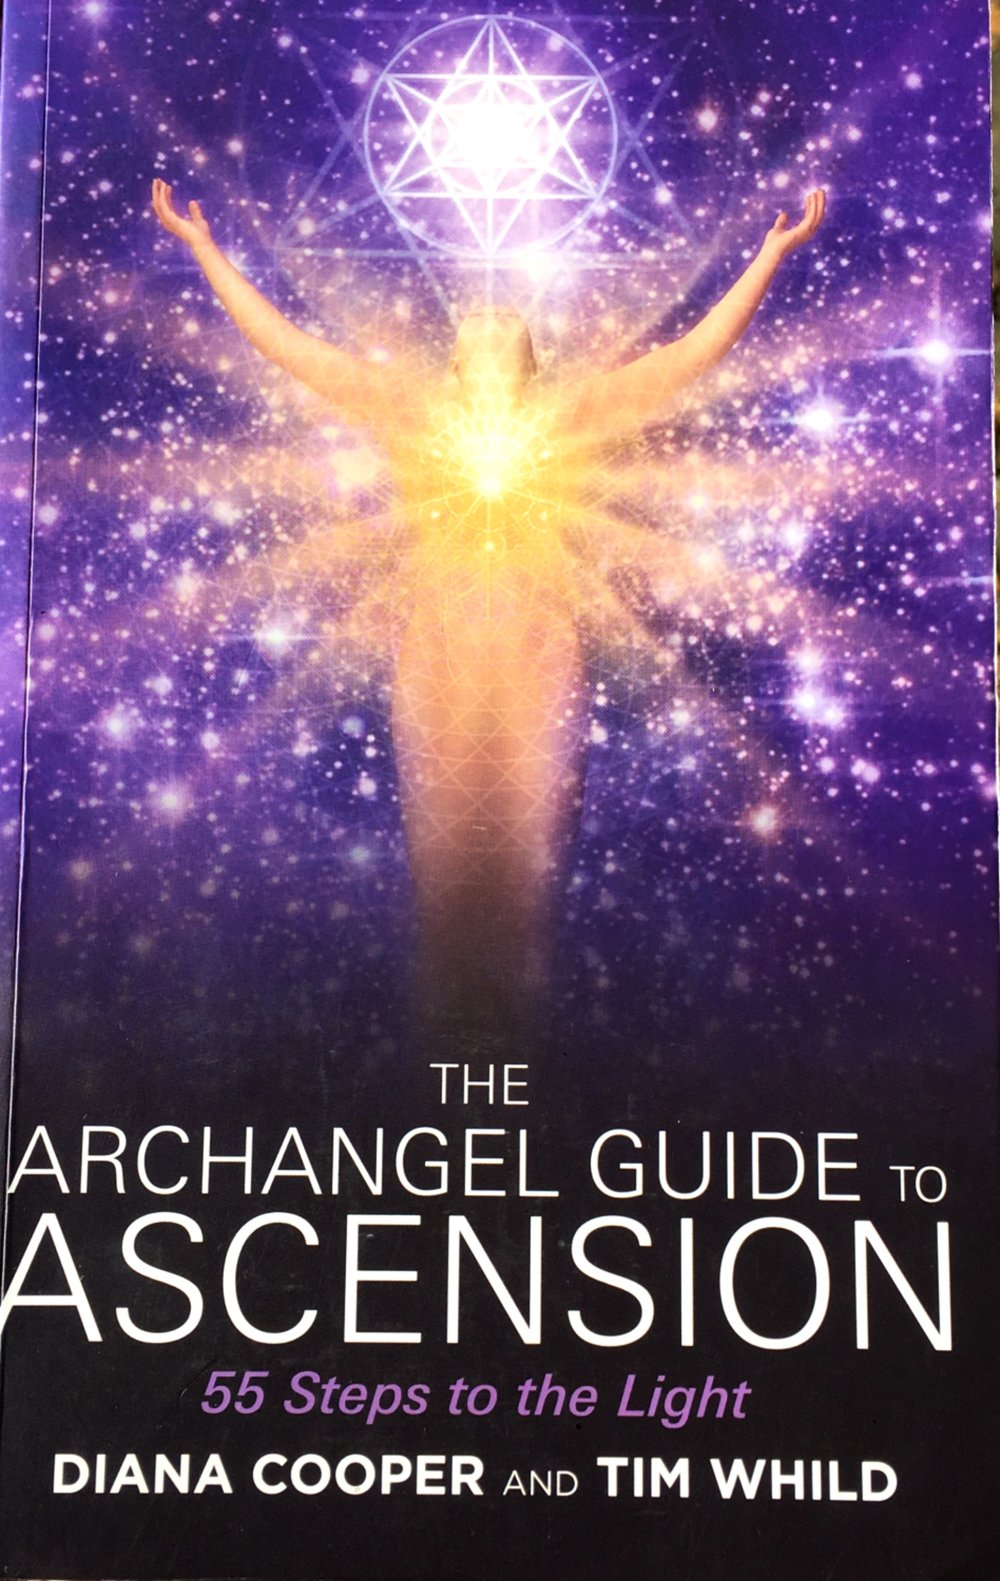 The Archangel Guide to Ascension 55 Steps to Light BOOK.jpg